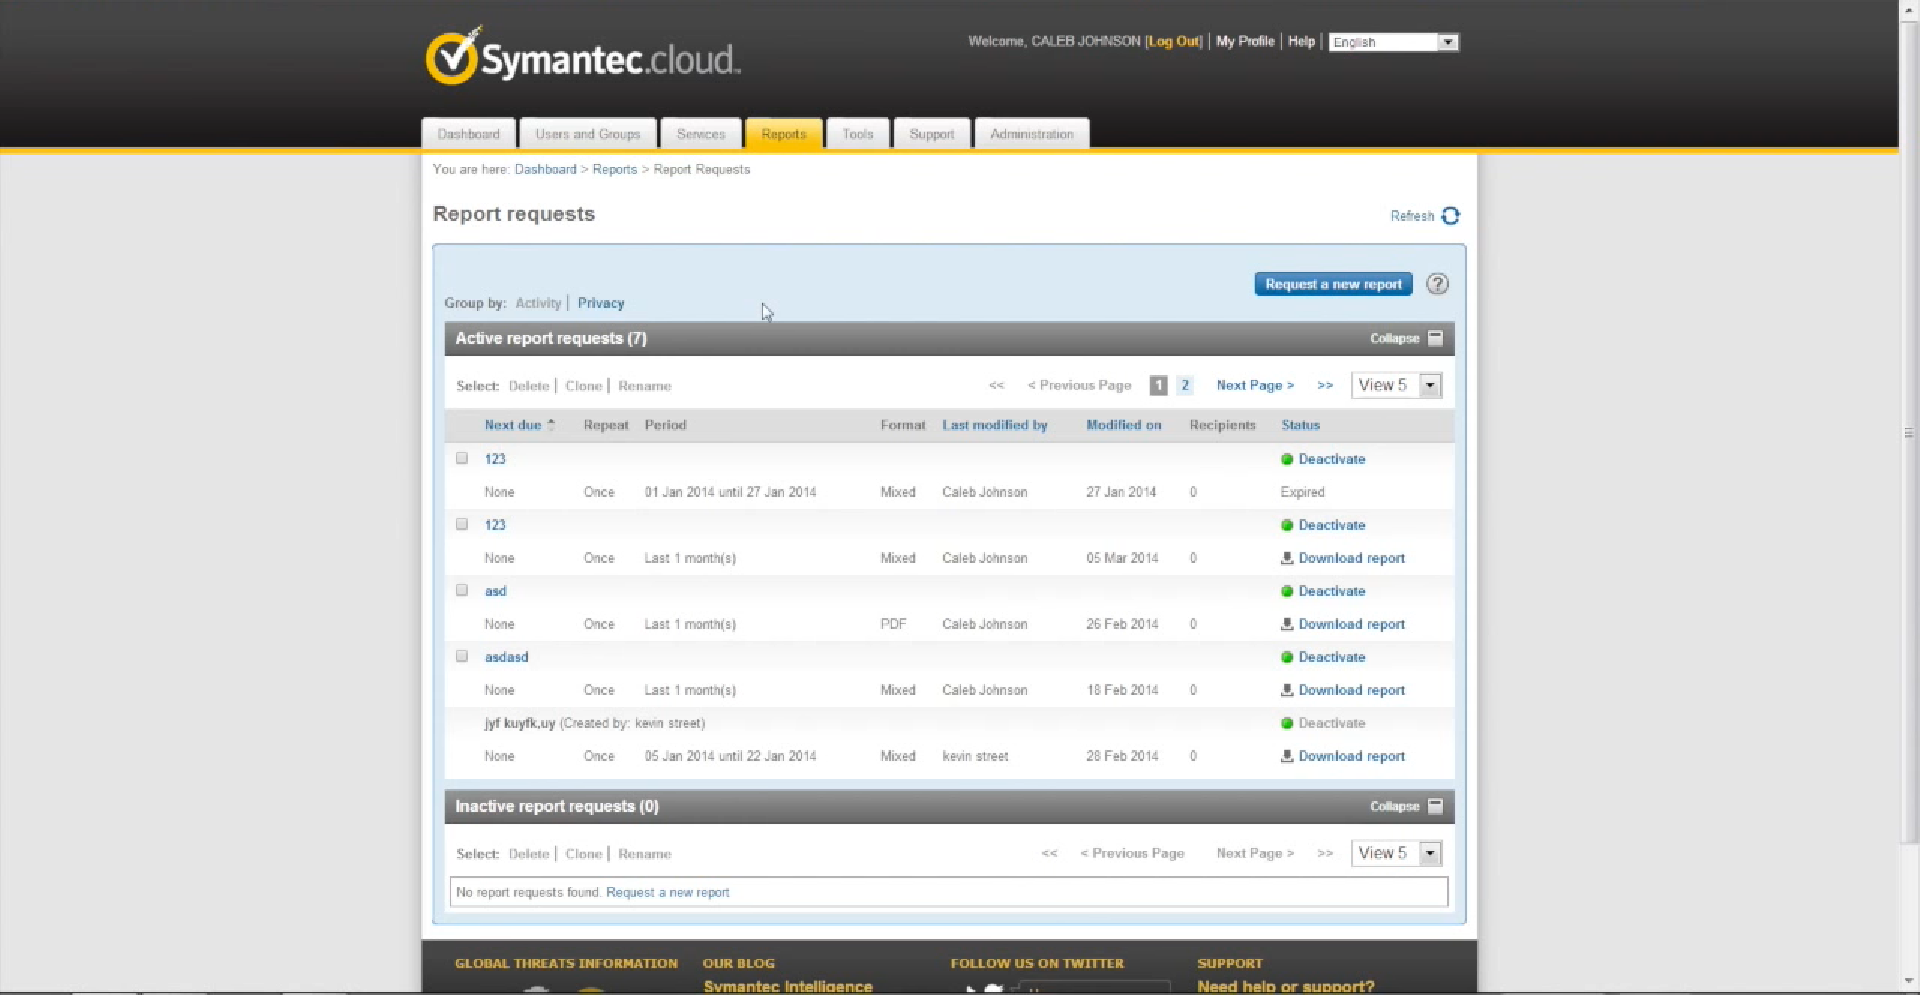 Symantec Cloud report requests